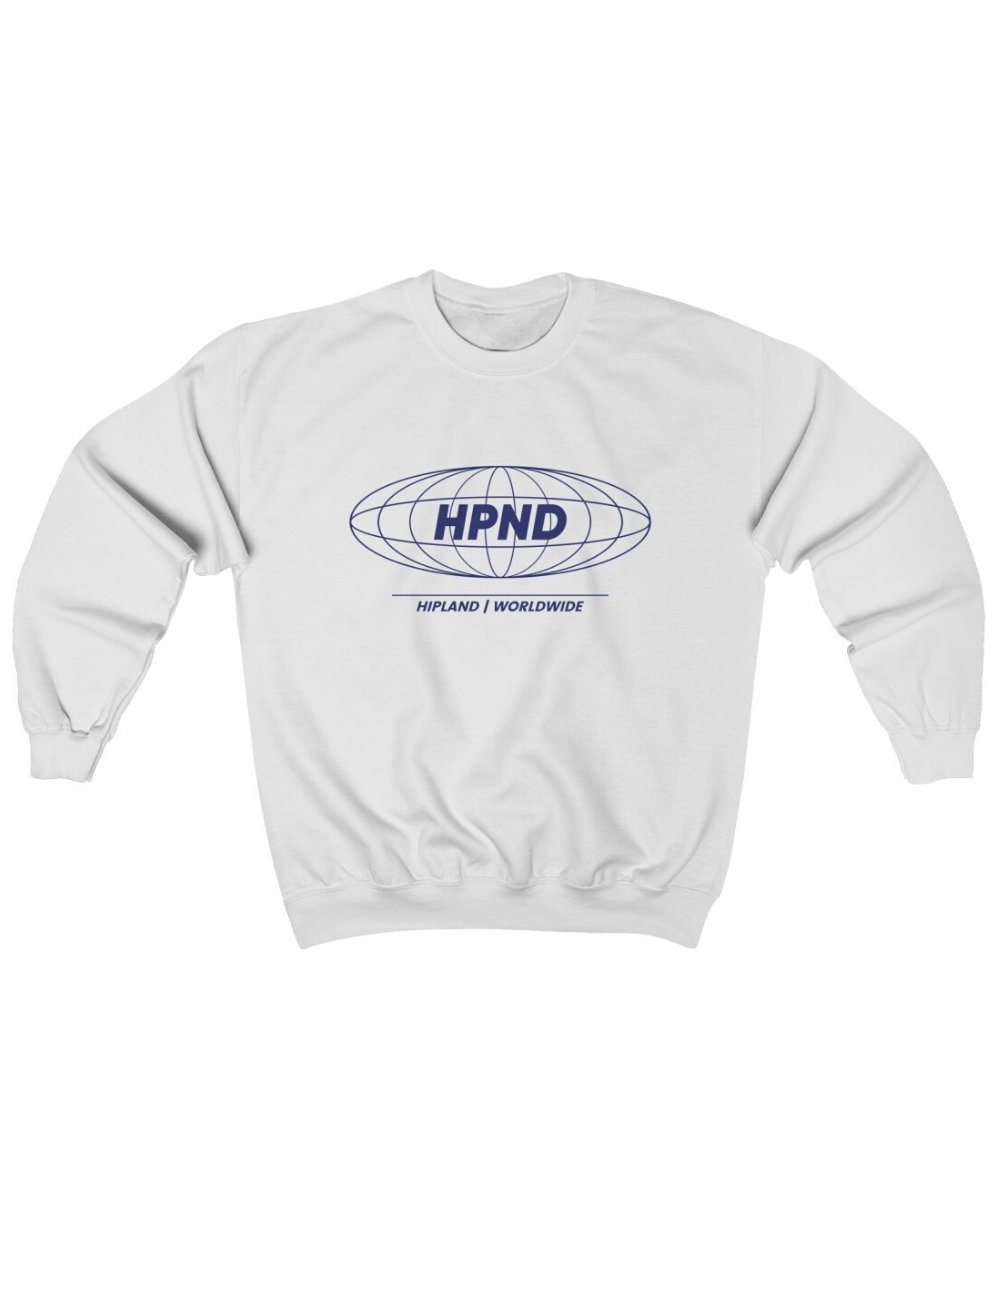 HPND Worldwide Sweatshirt In White